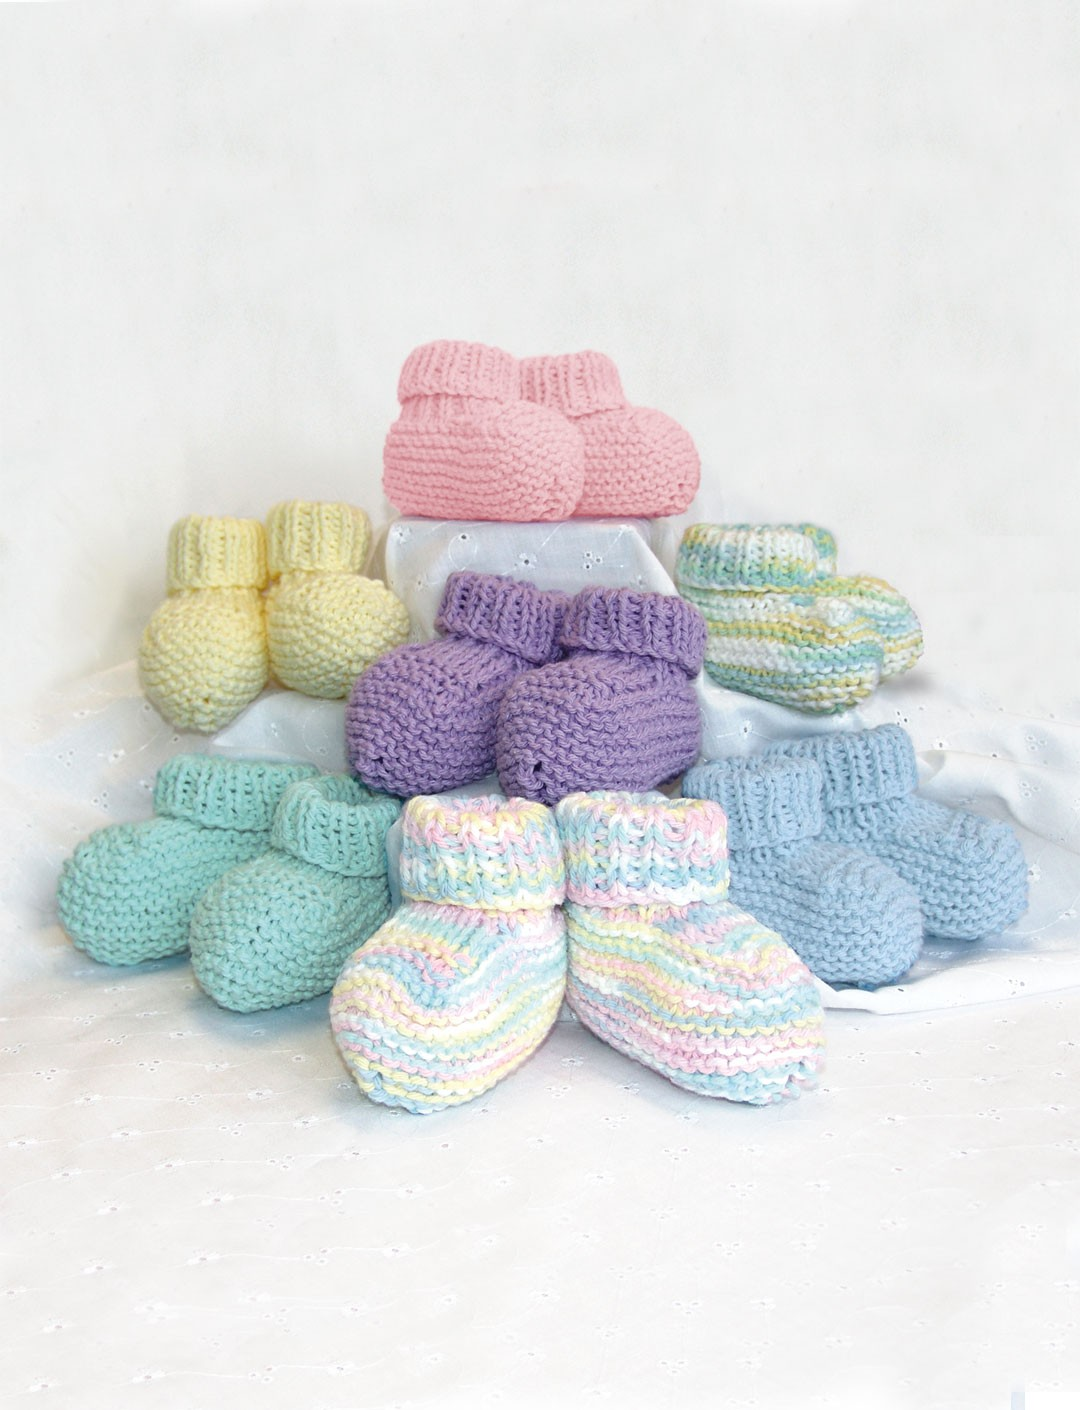 Knitting Baby Booties Patterns : Knit bibs and booties patterns yarnspirations